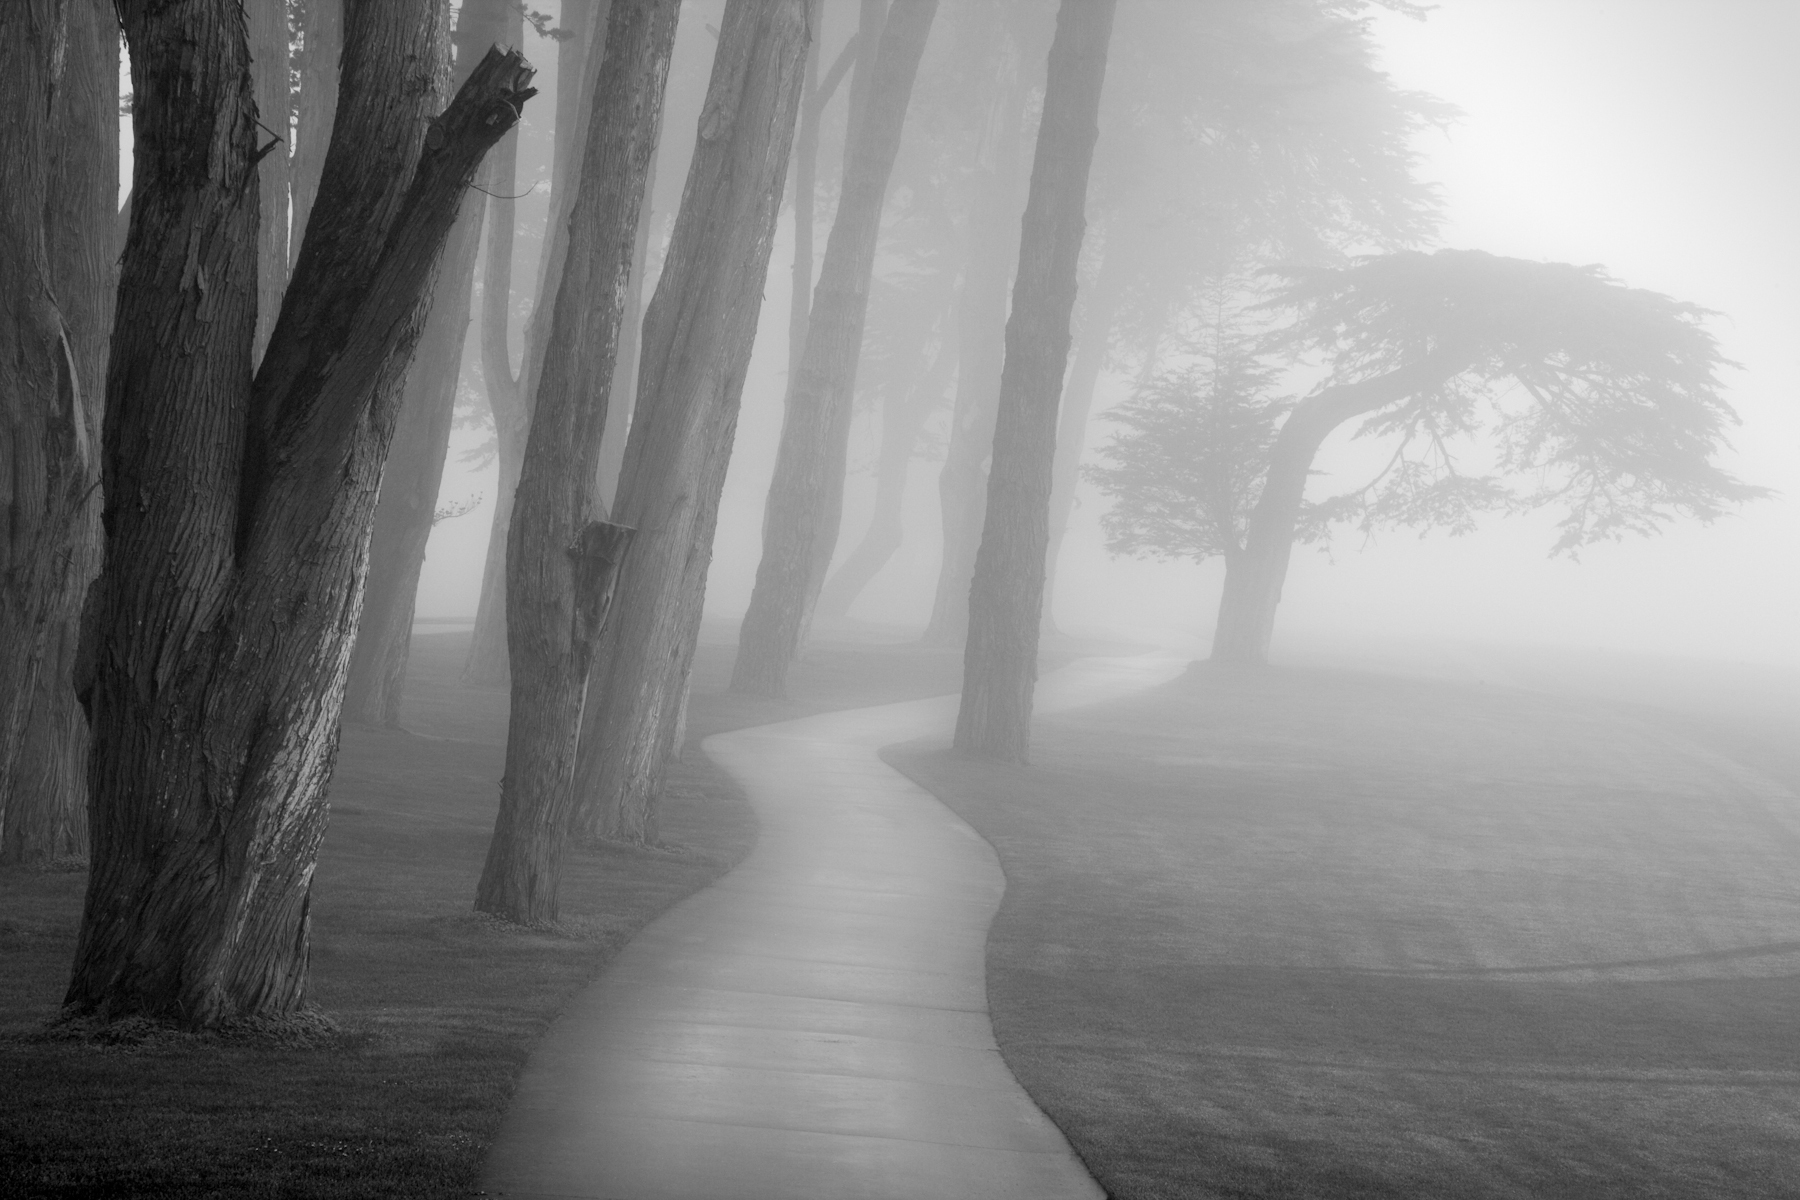 Think Fog in a Park